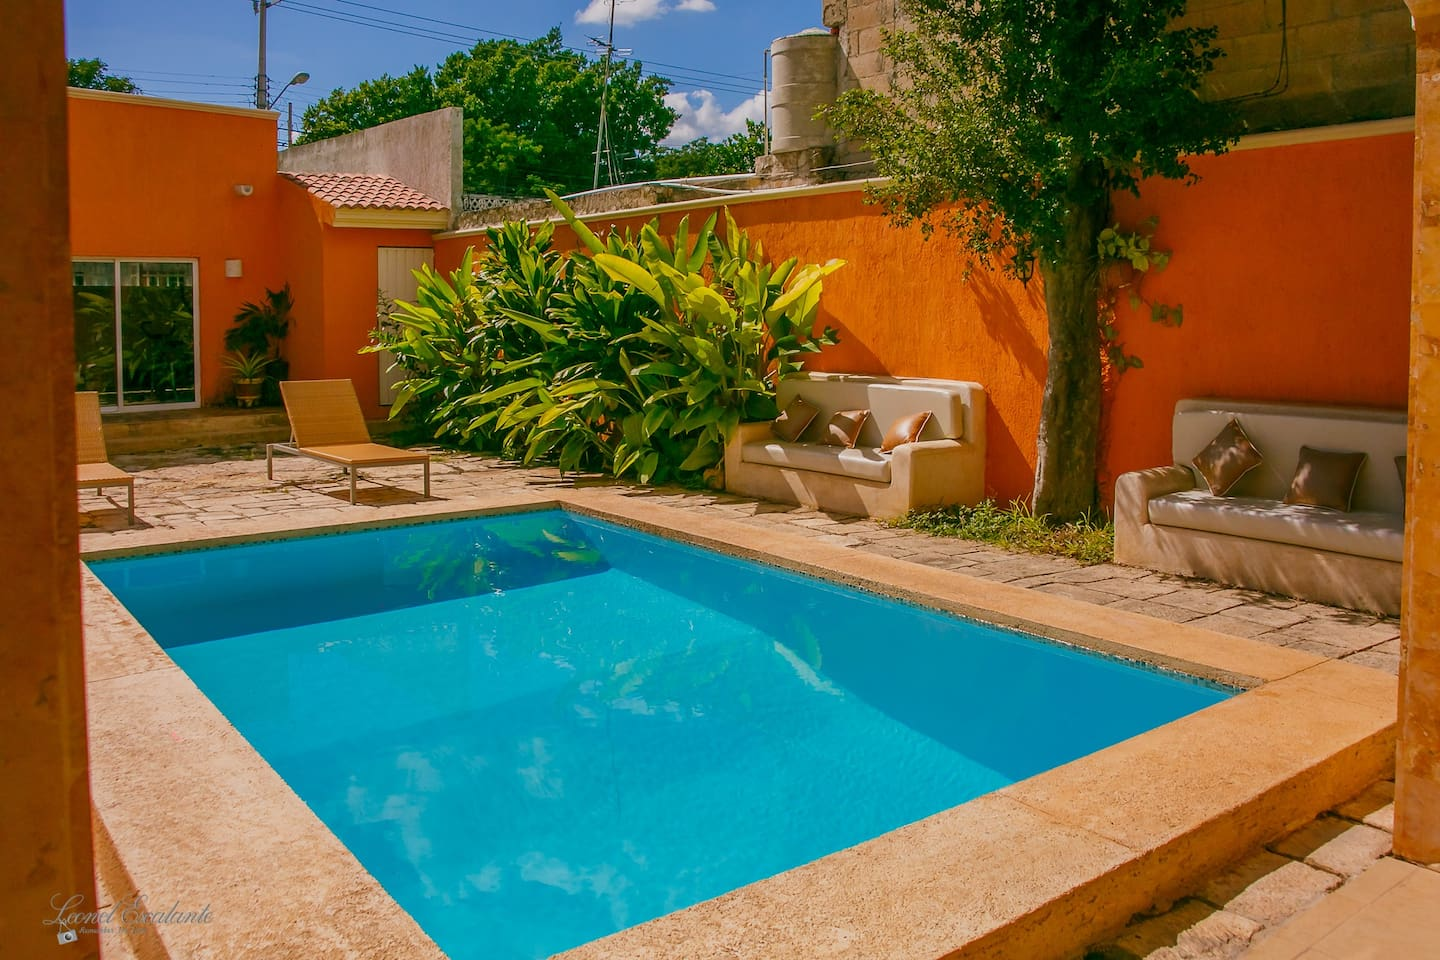 the pool is the most relaxing place on the main terrace, Yucatan is a warm place and you will love taking a bath in this small oasis